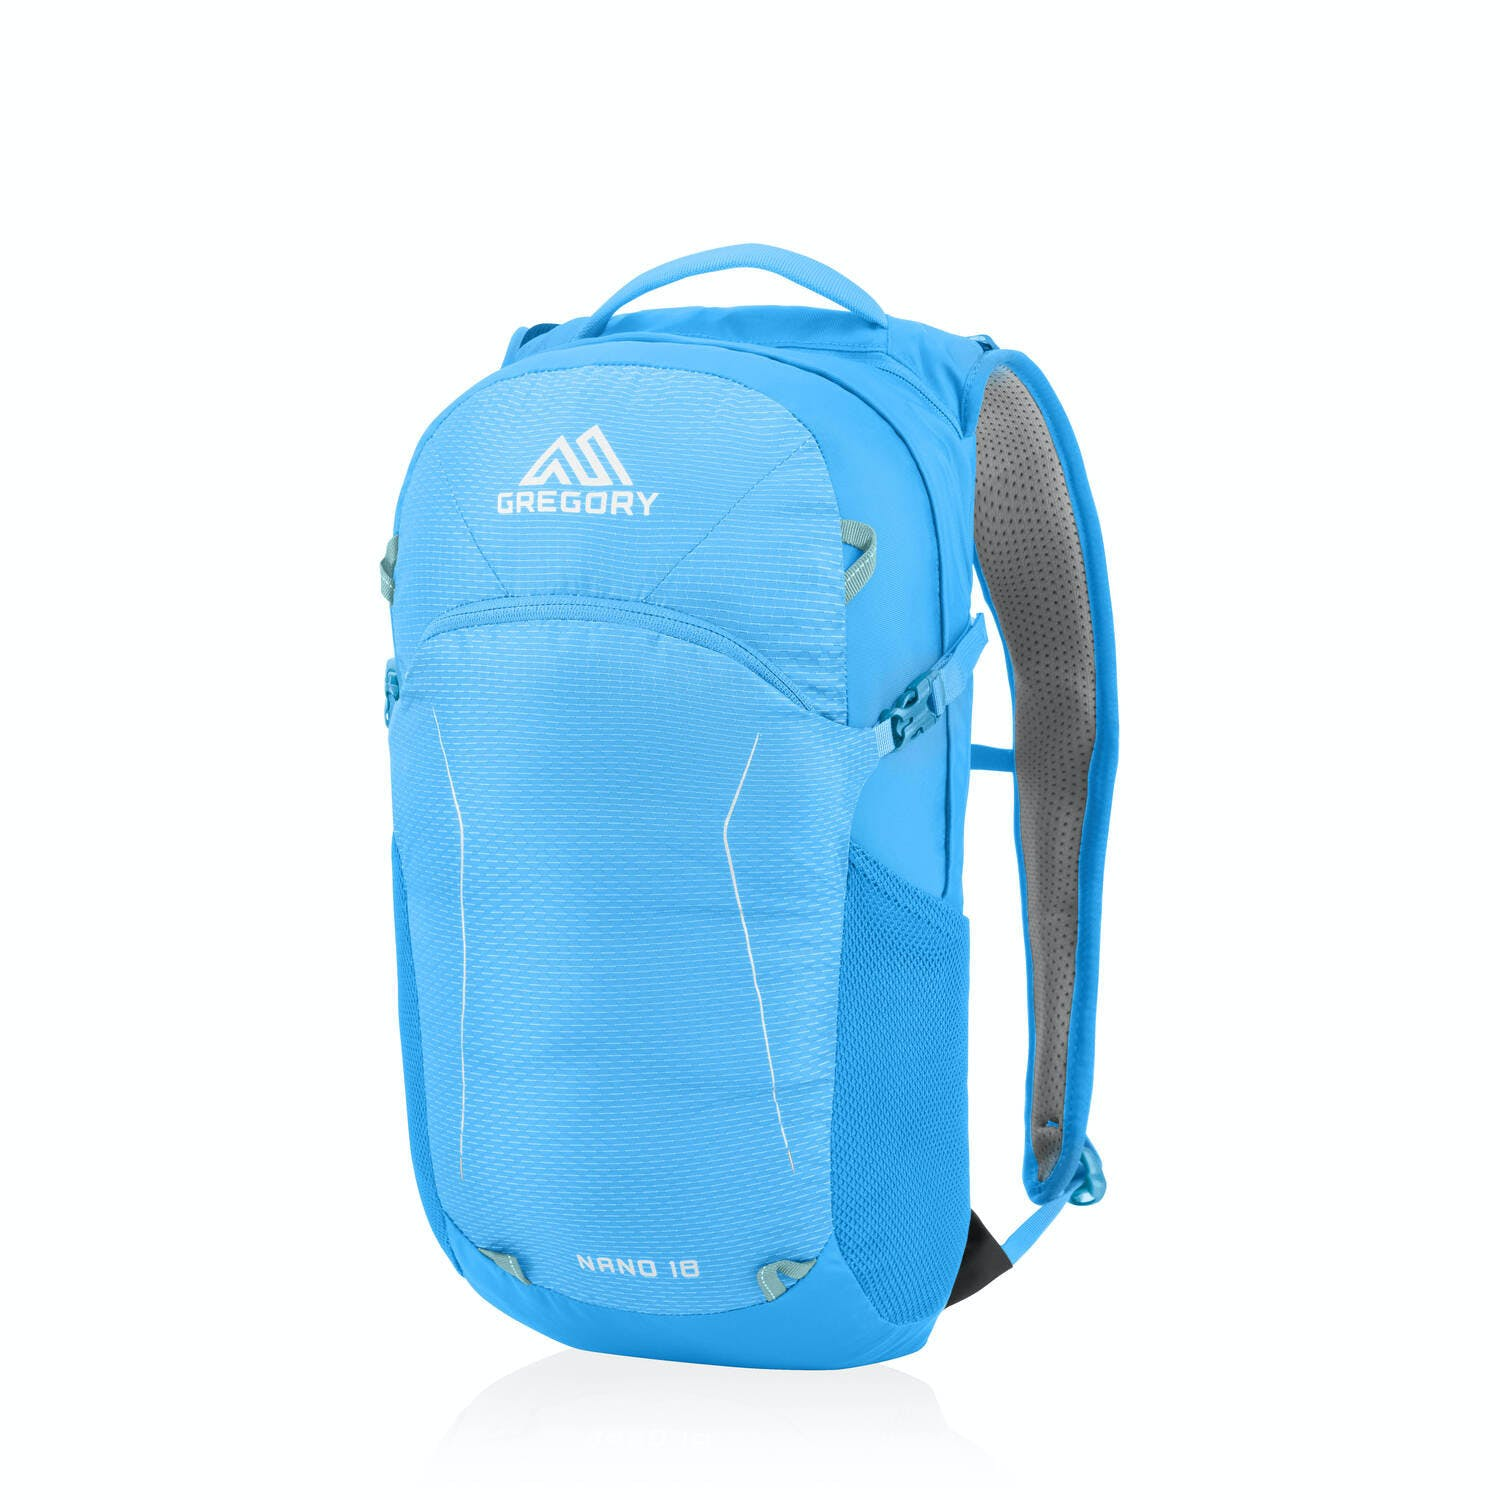 GREGORY - NANO 18 PACK - Mirage Blue